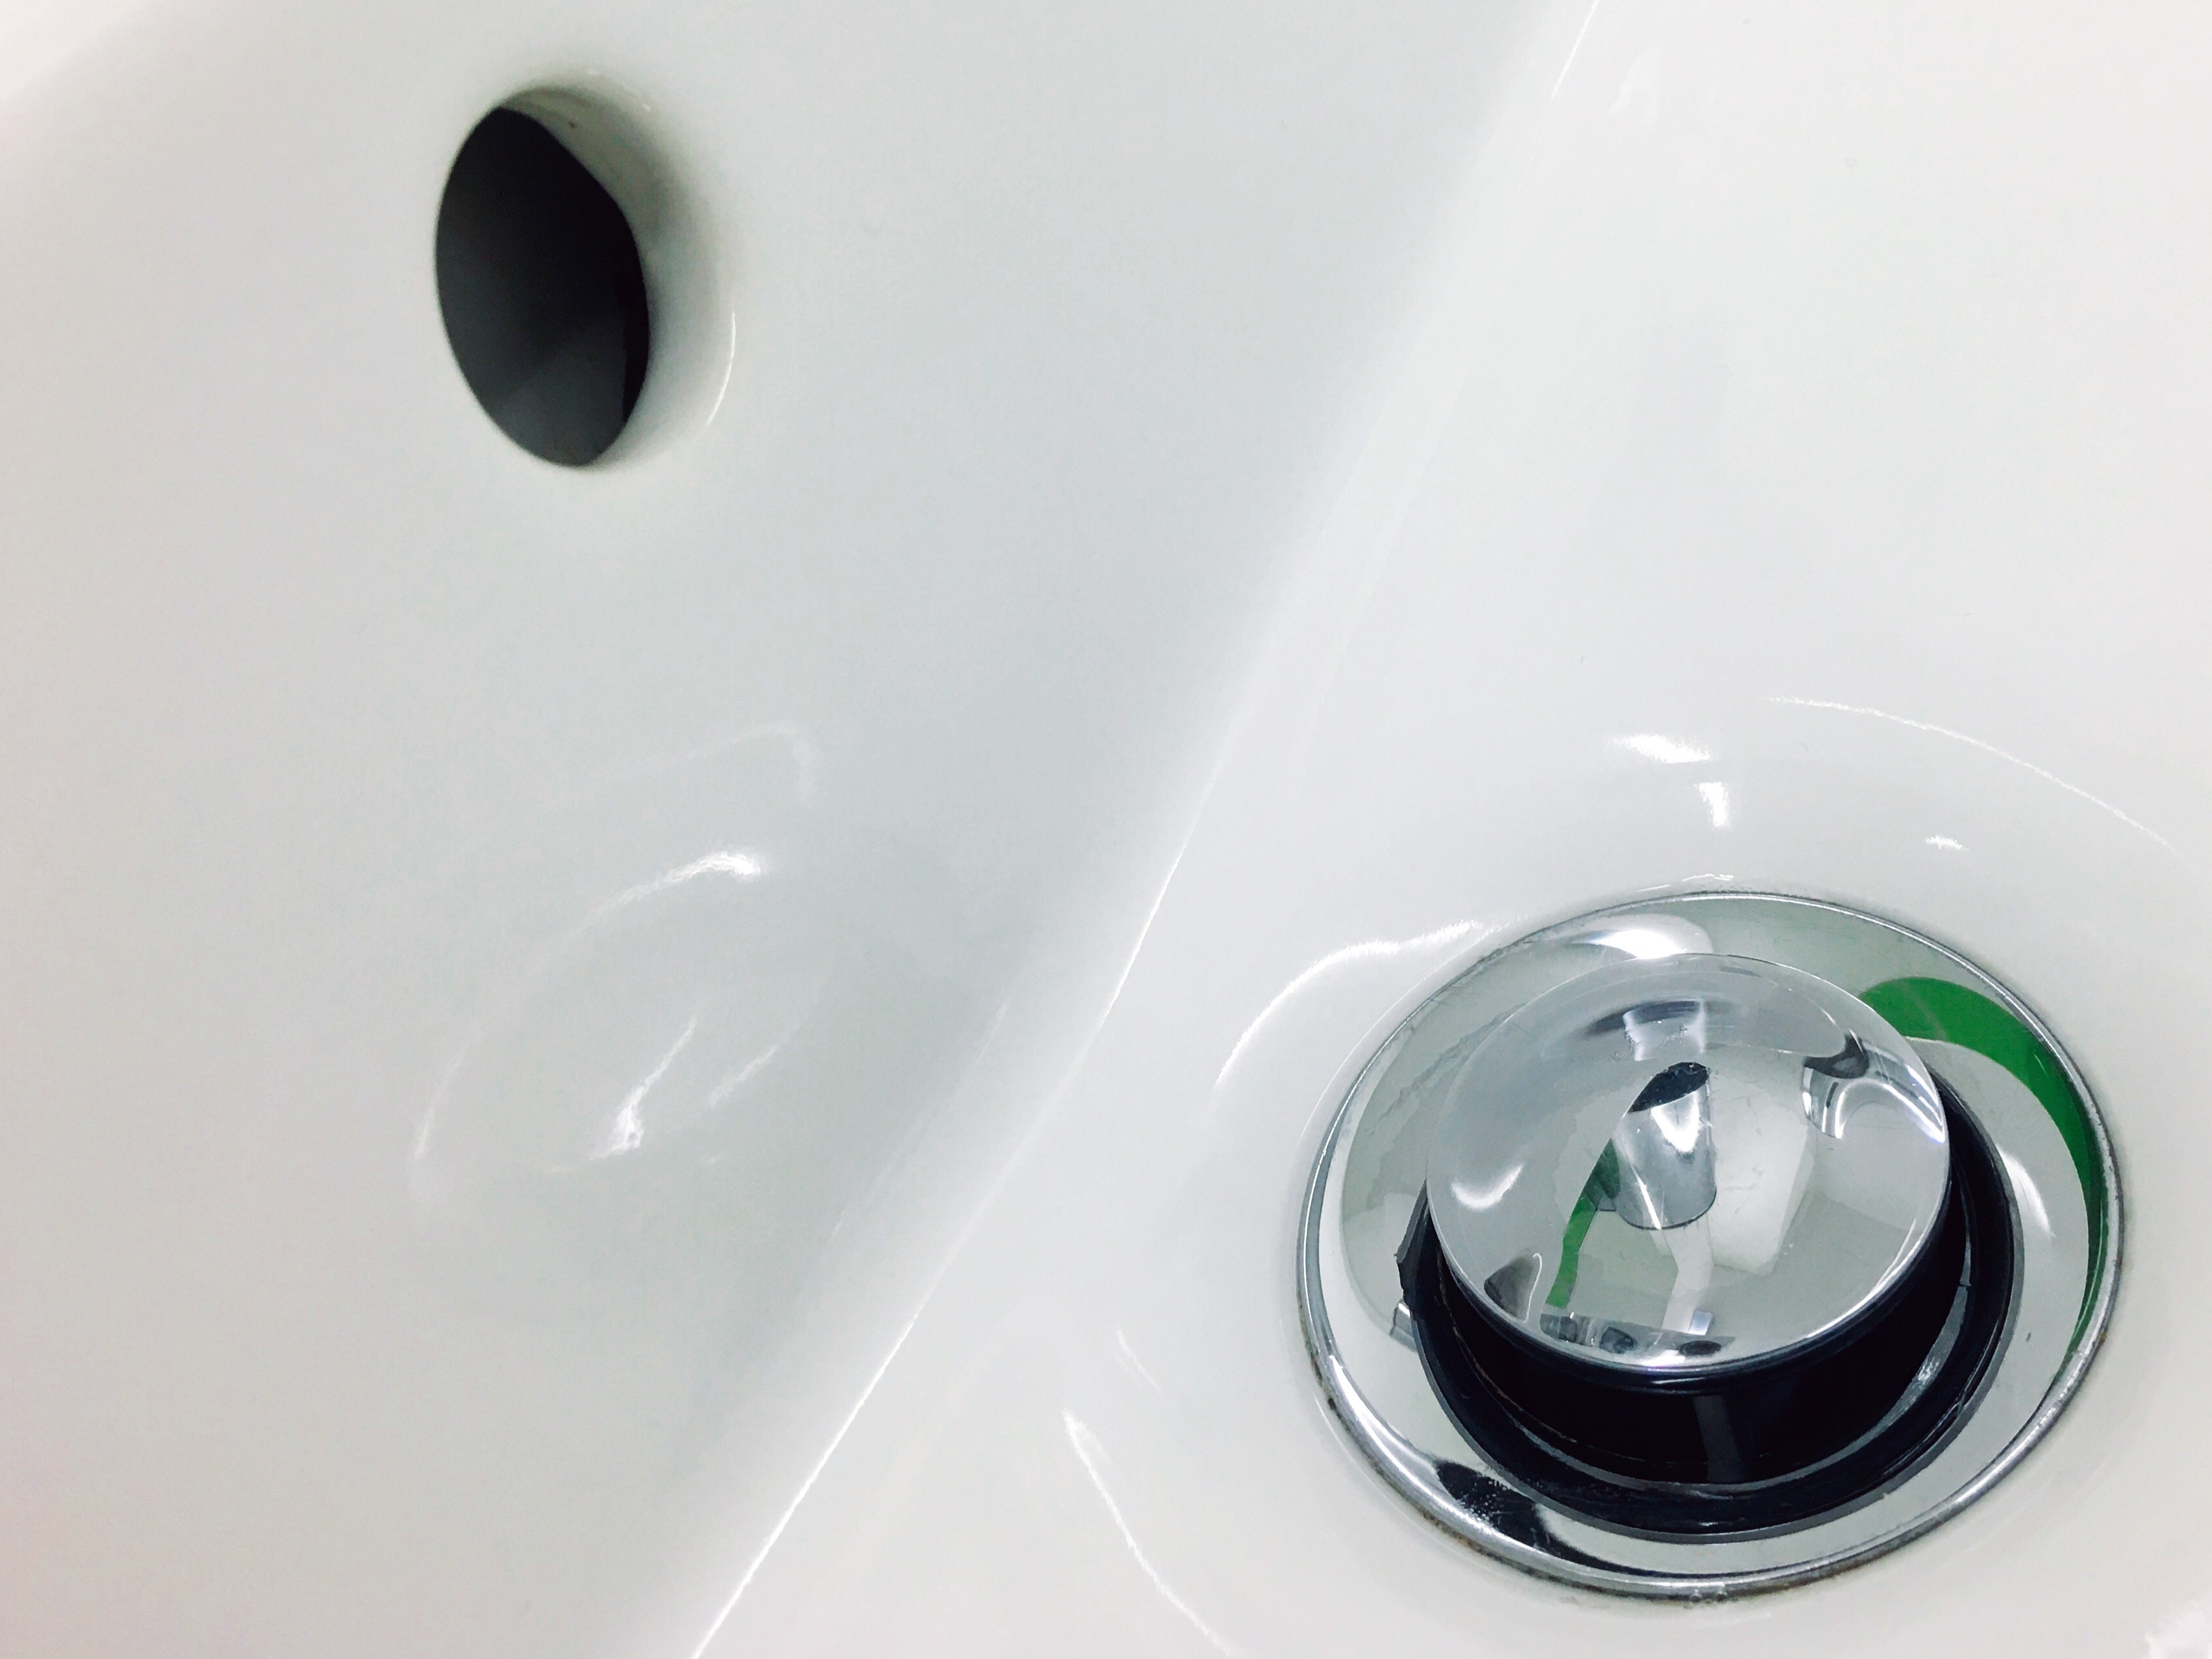 How to Repair a Small Surface Chip in a Fiberglass Tub